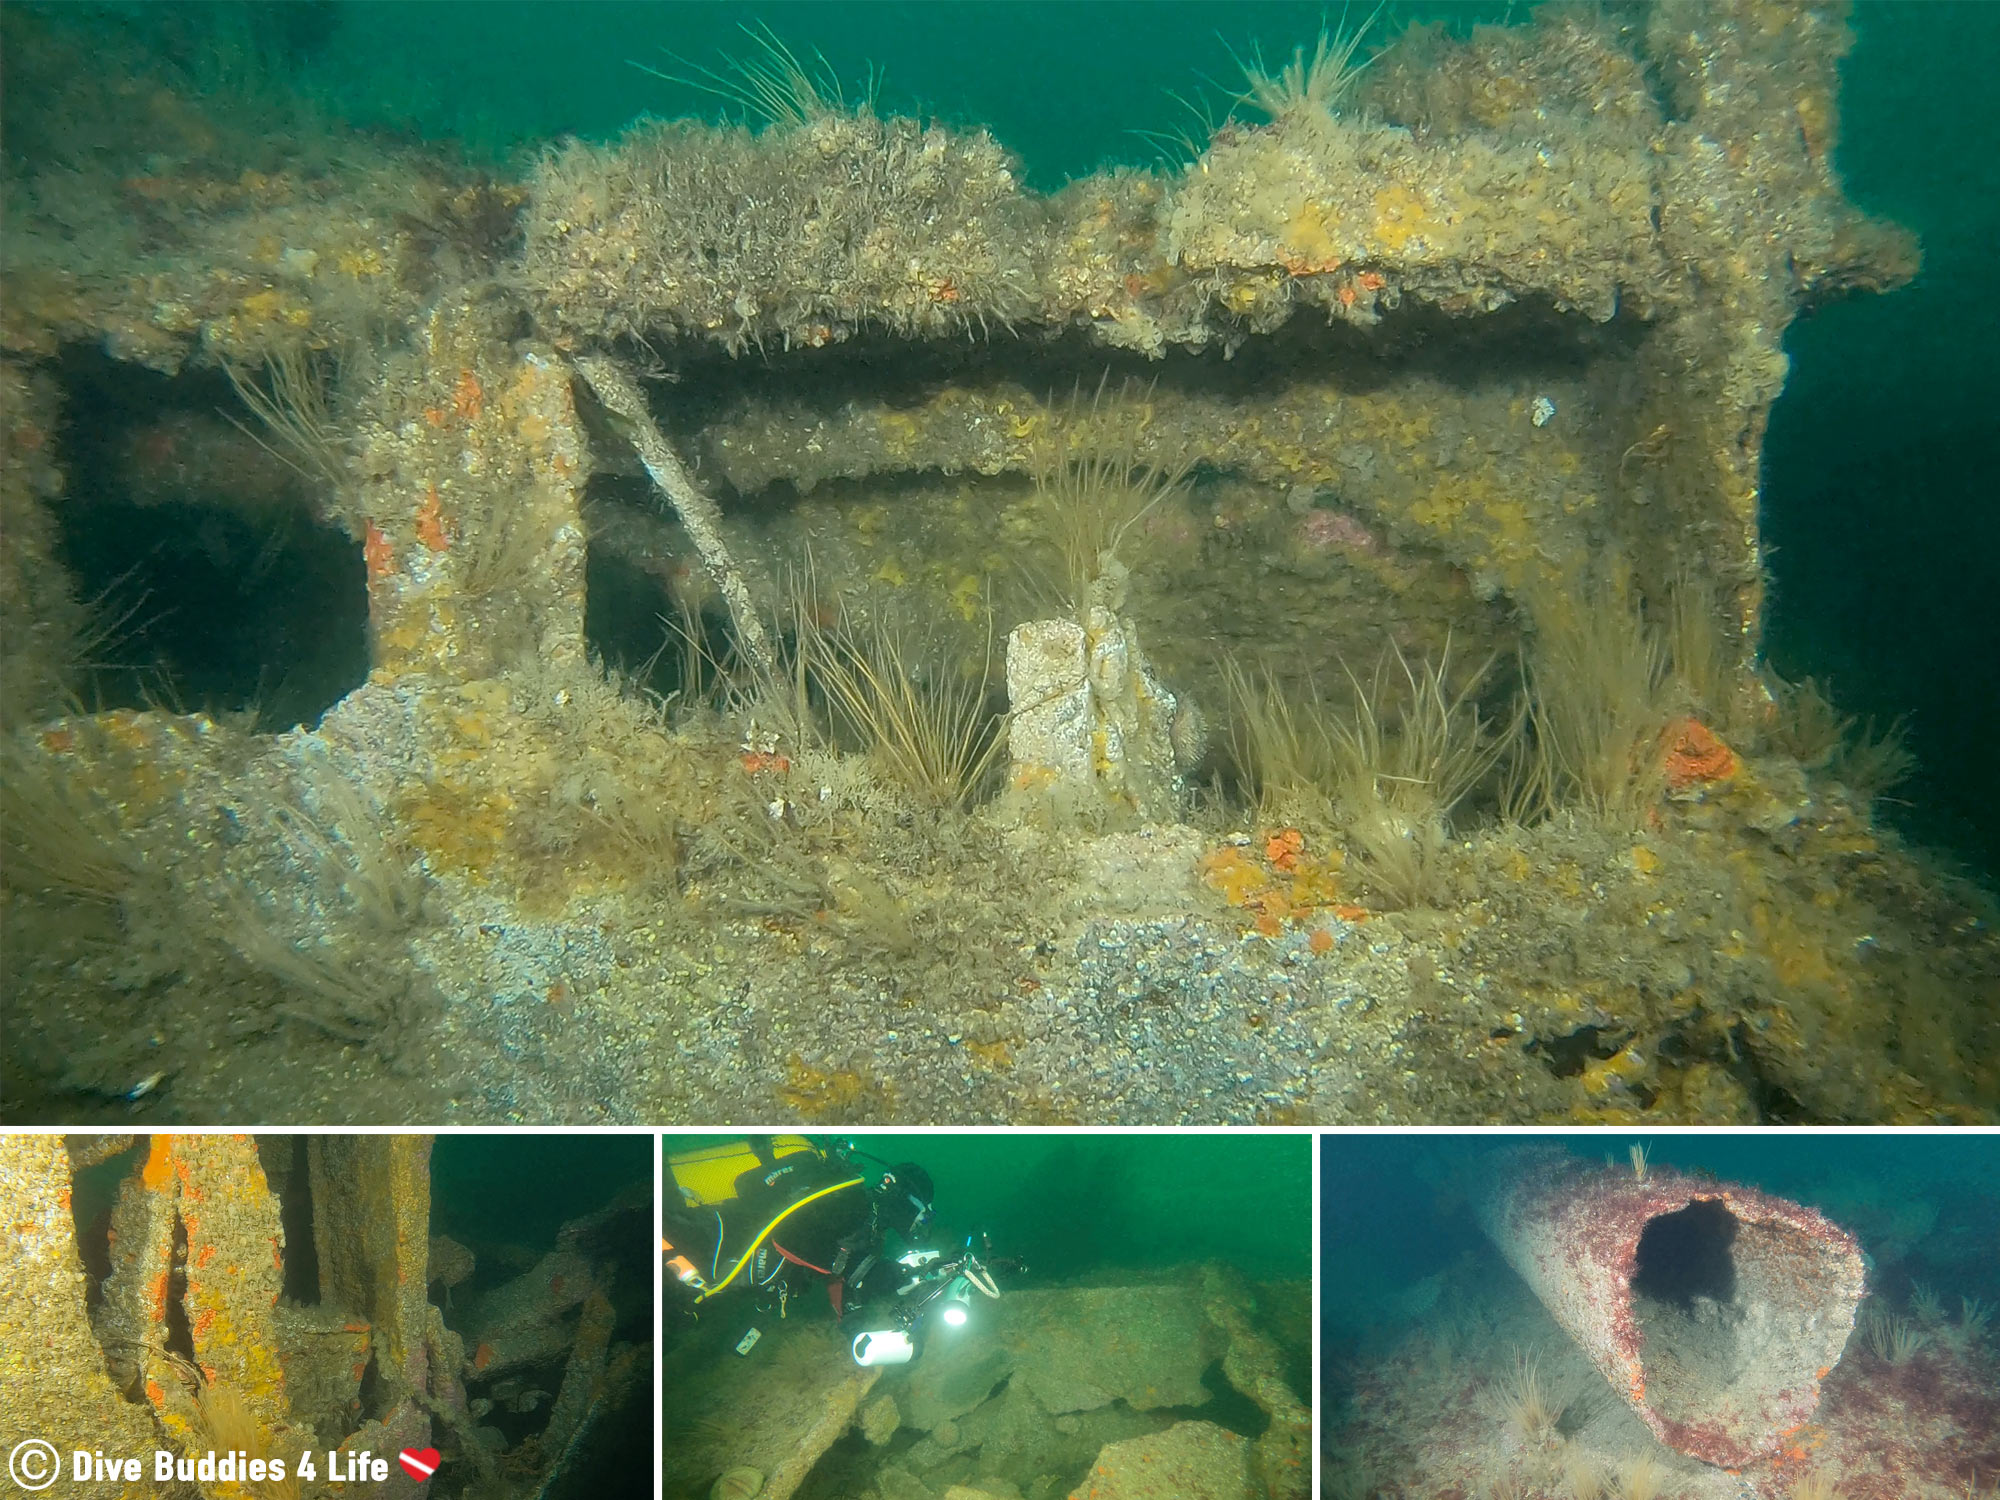 The Marine Life Covered Shipwreck In Brest, Scuba Diving France, Europe